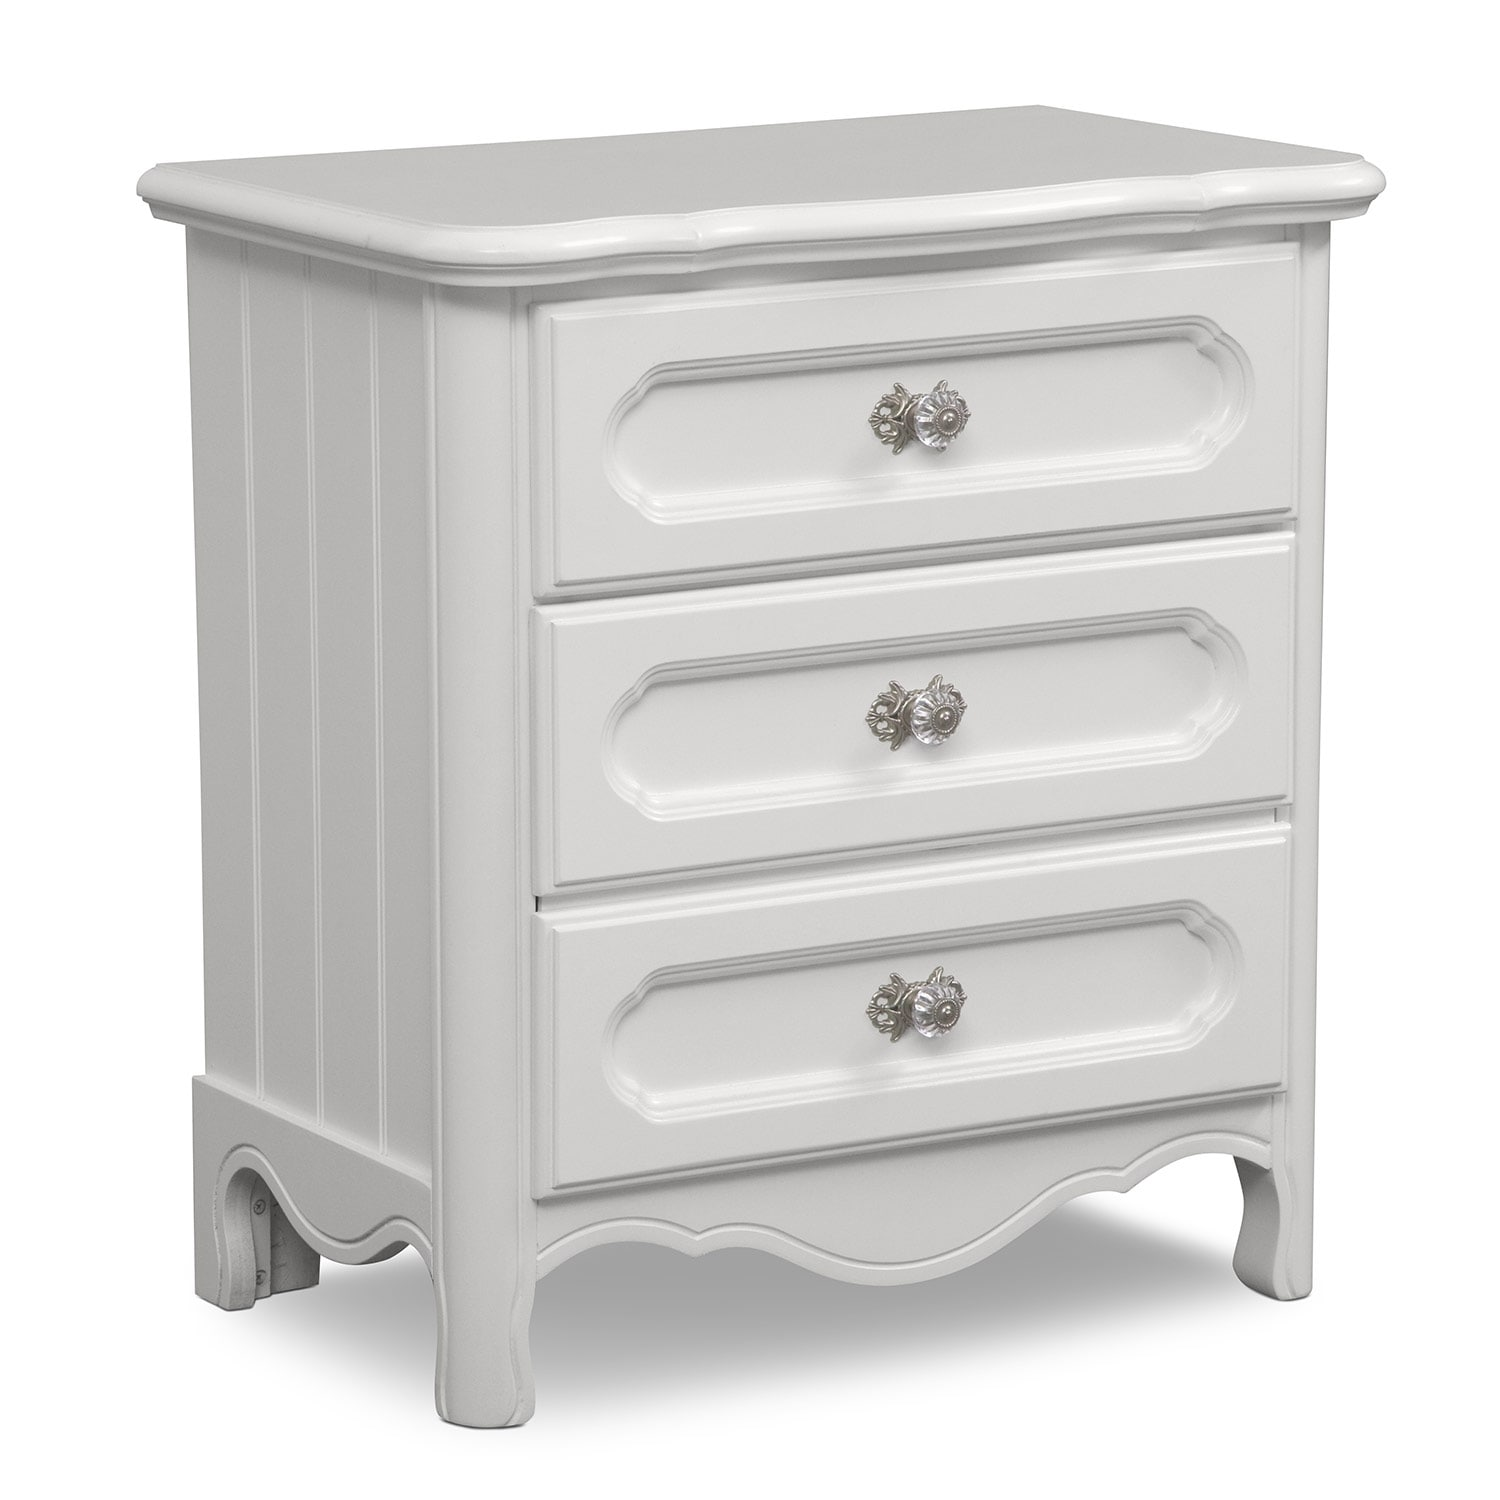 Carly Nightstand - White